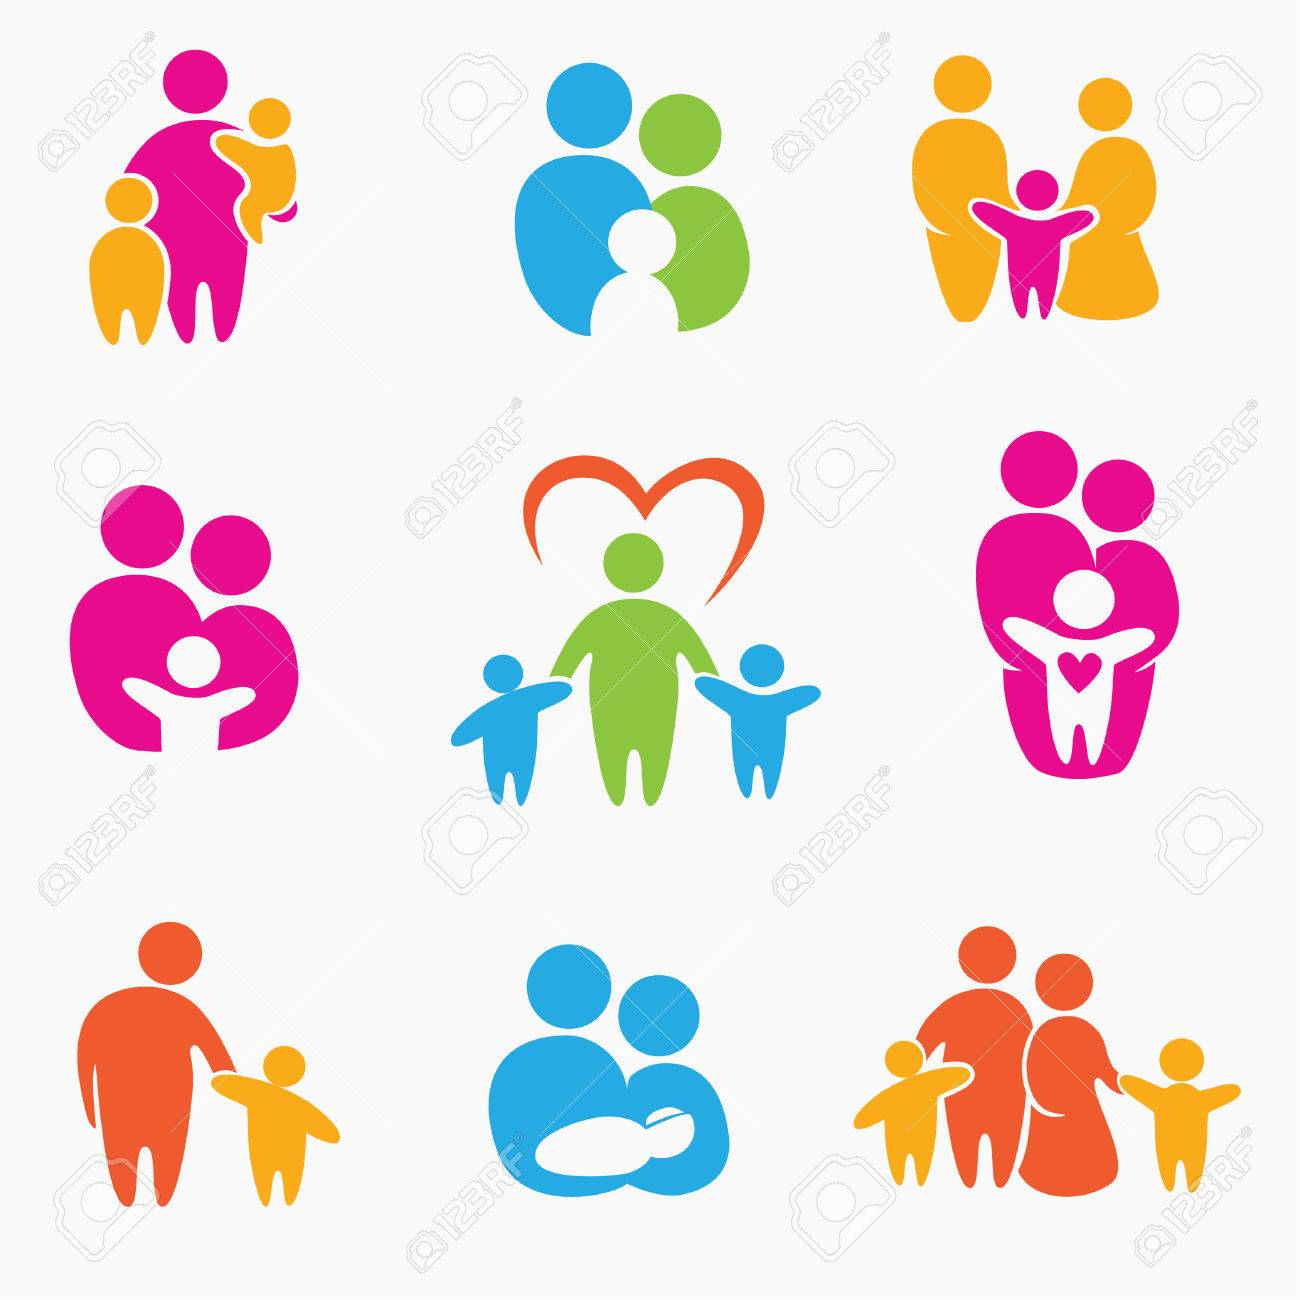 happy family icons, symbols collection - 54024628